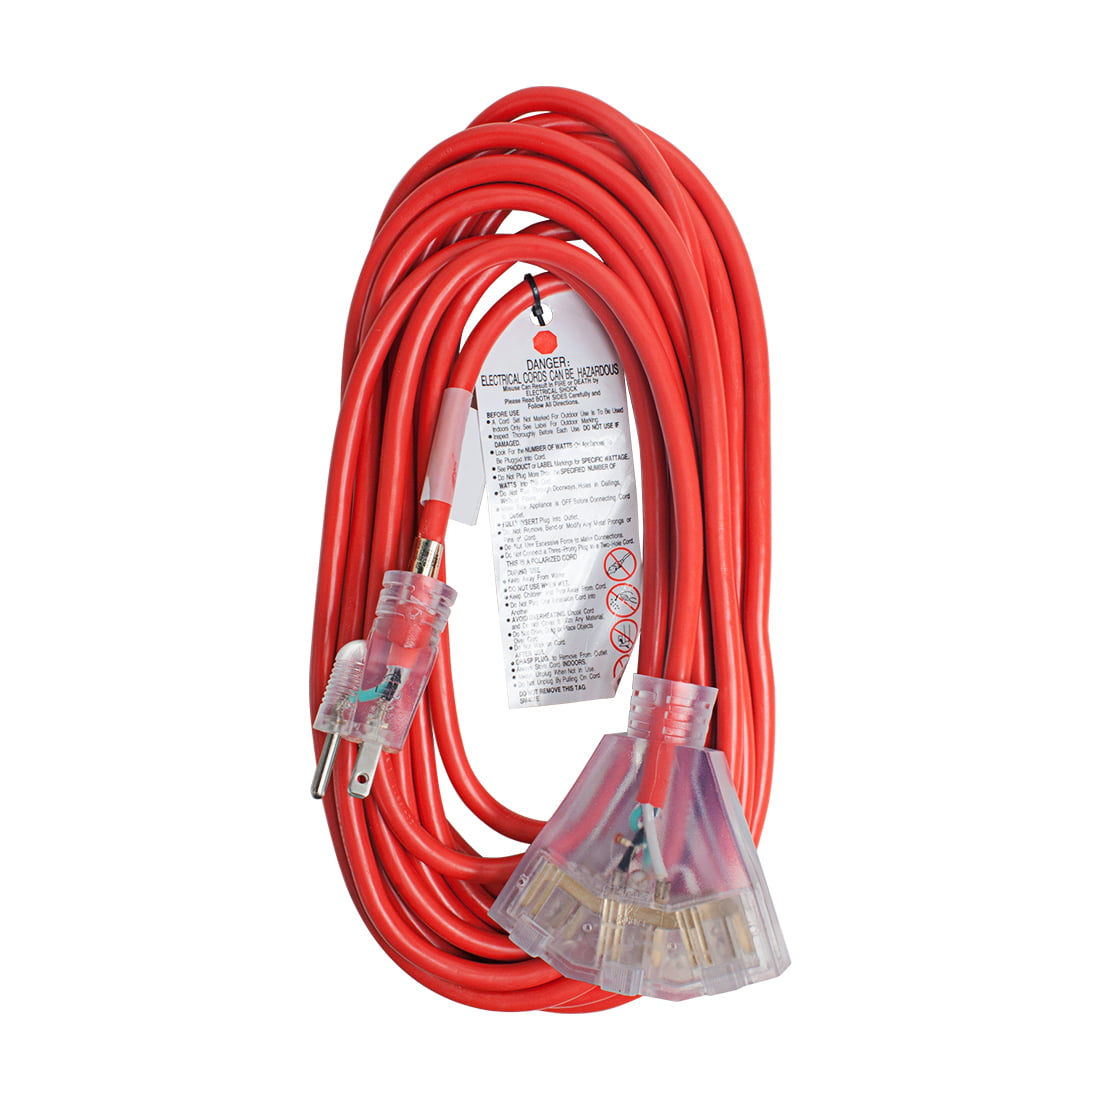 14AWG Power Extension Cord Cable for Indoor /& Outdoor SJTW 14//3C 15A//125V 25ft